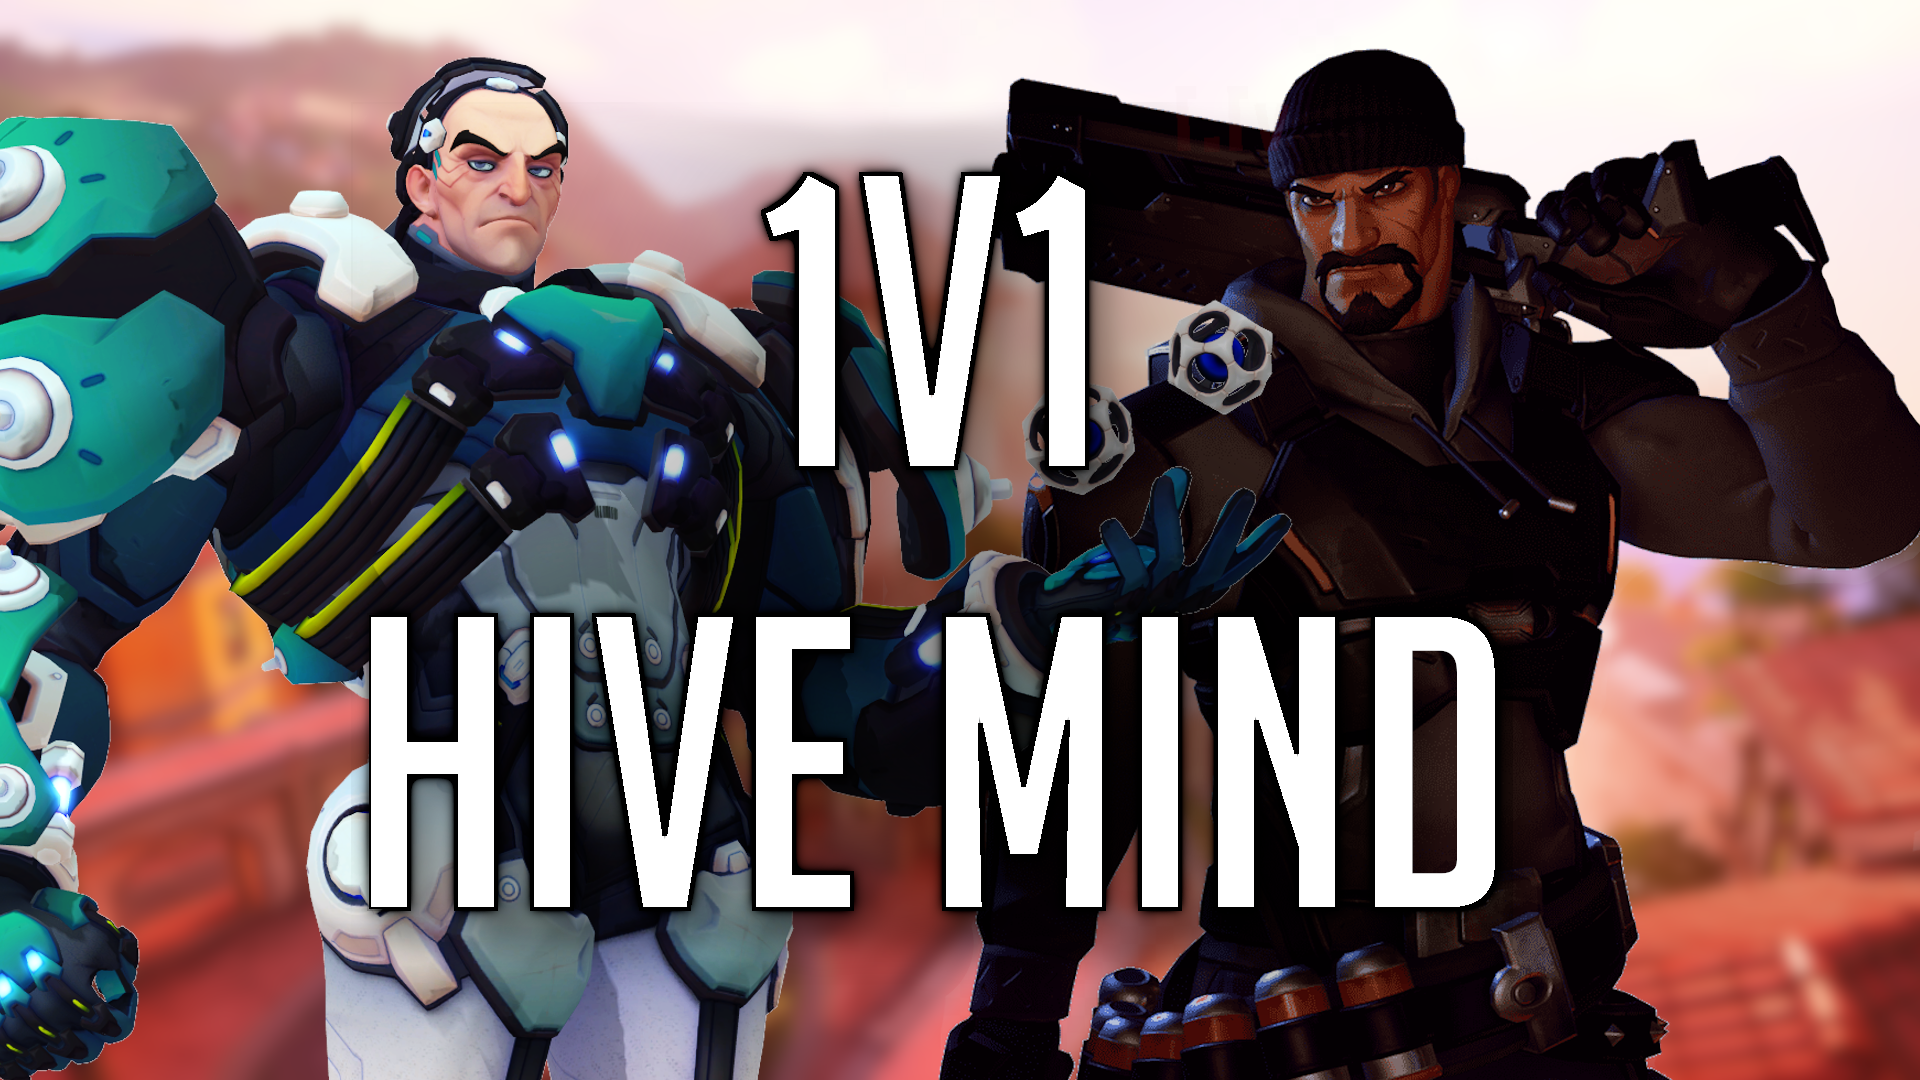 Thumbnail for Hive Mind 1v1